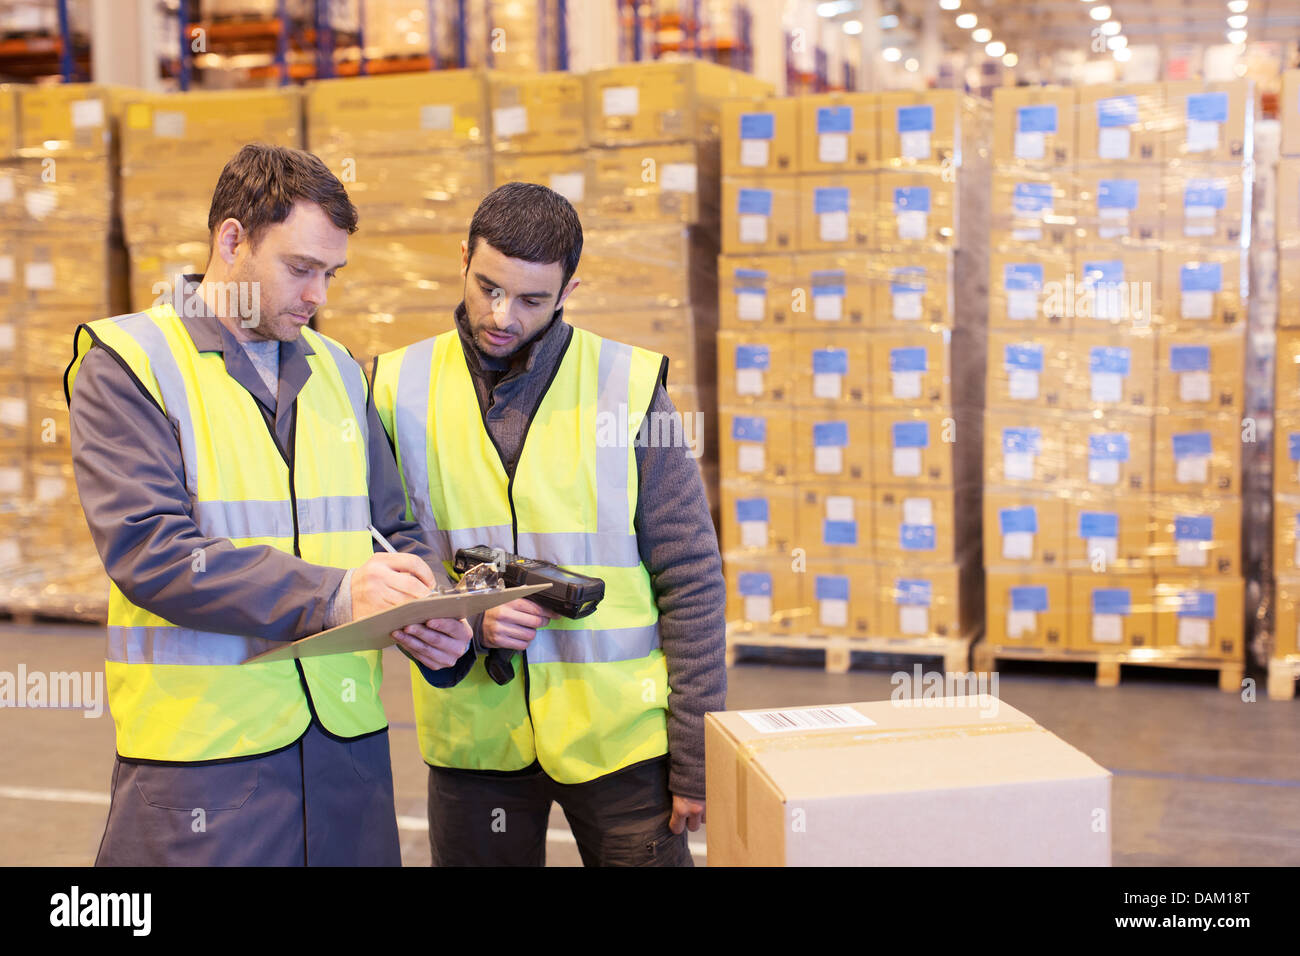 Workers writing on clipboard in warehouse - Stock Image